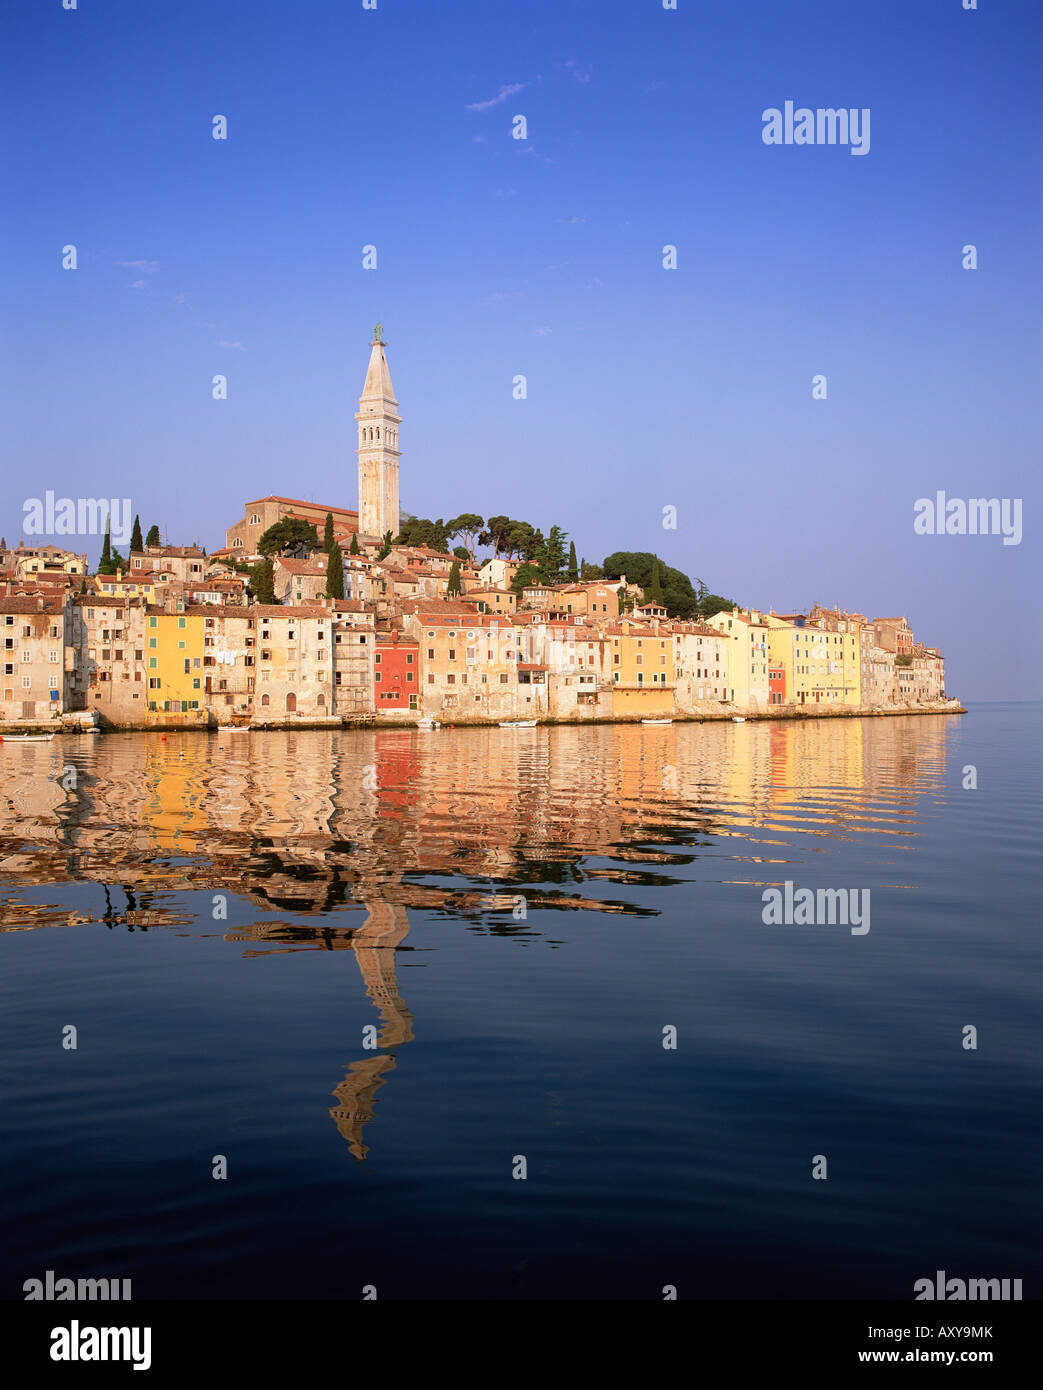 Old Town houses and cathedral of St. Euphemia, Rovinj, Istria, Croatia, Europe - Stock Image